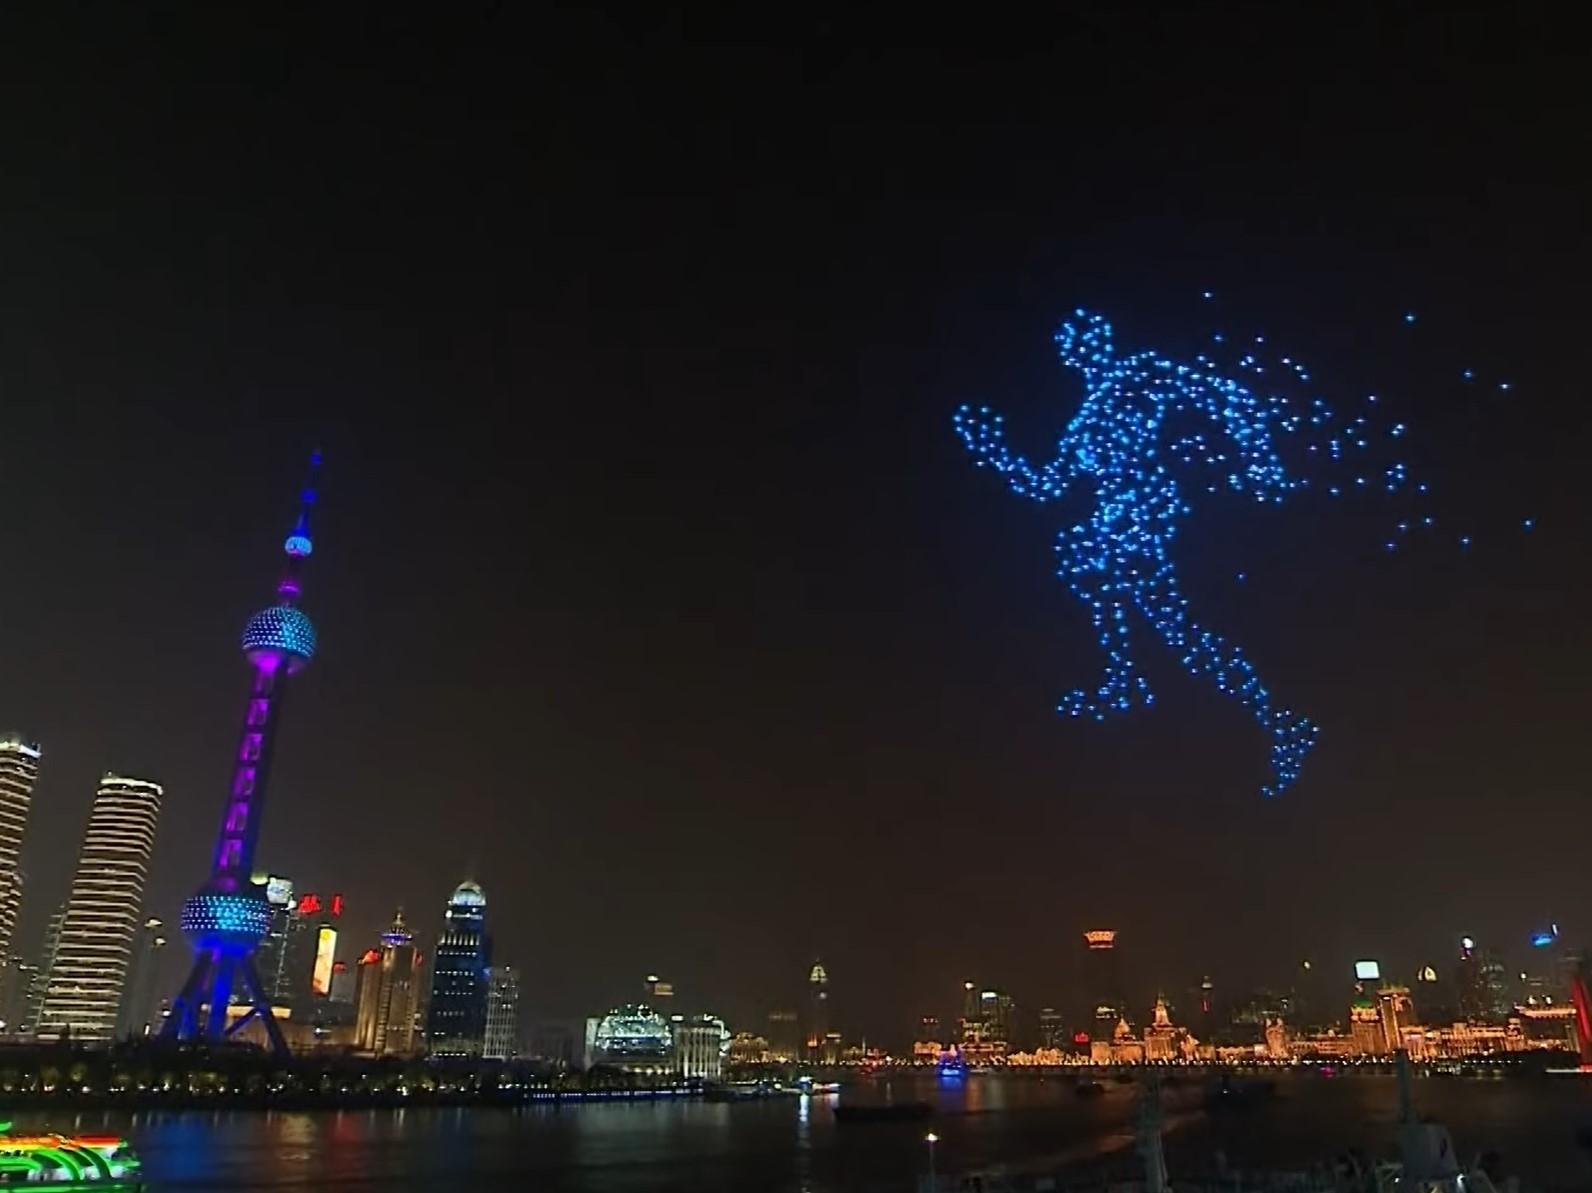 Thousands of drones fill skies above China to create giant running man